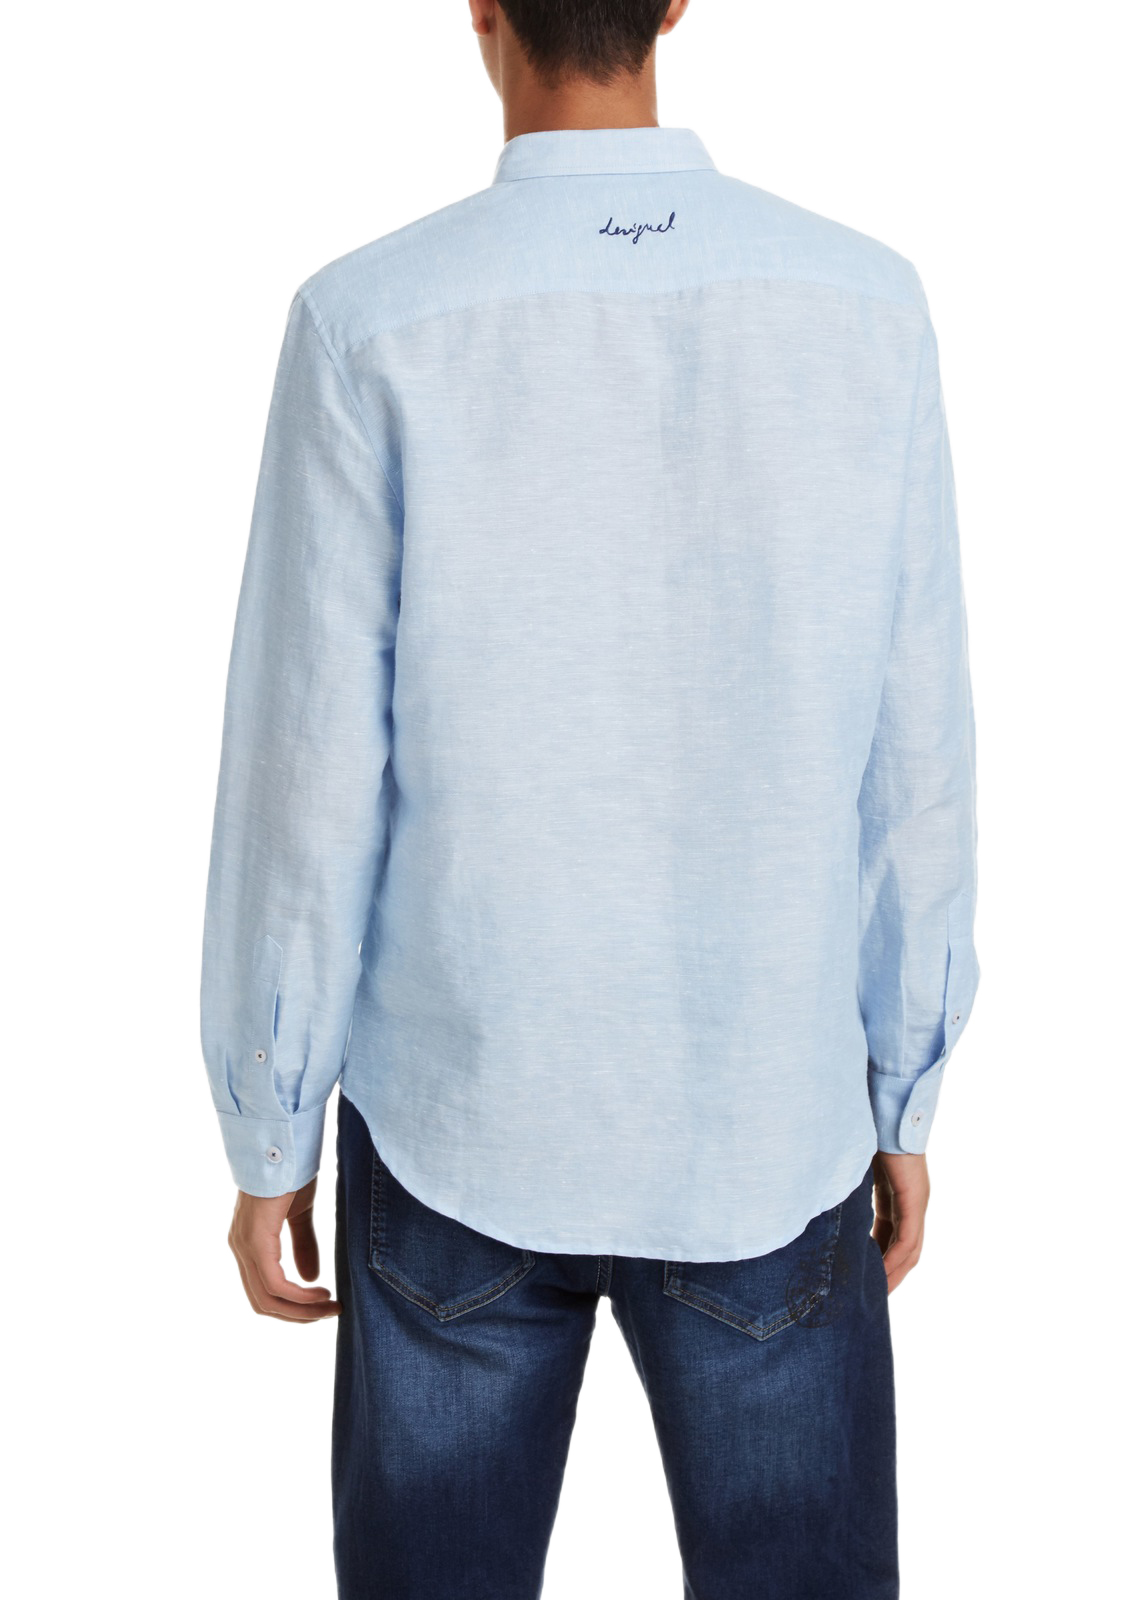 Desigual Blue Linen Shirt Man Template 1 color